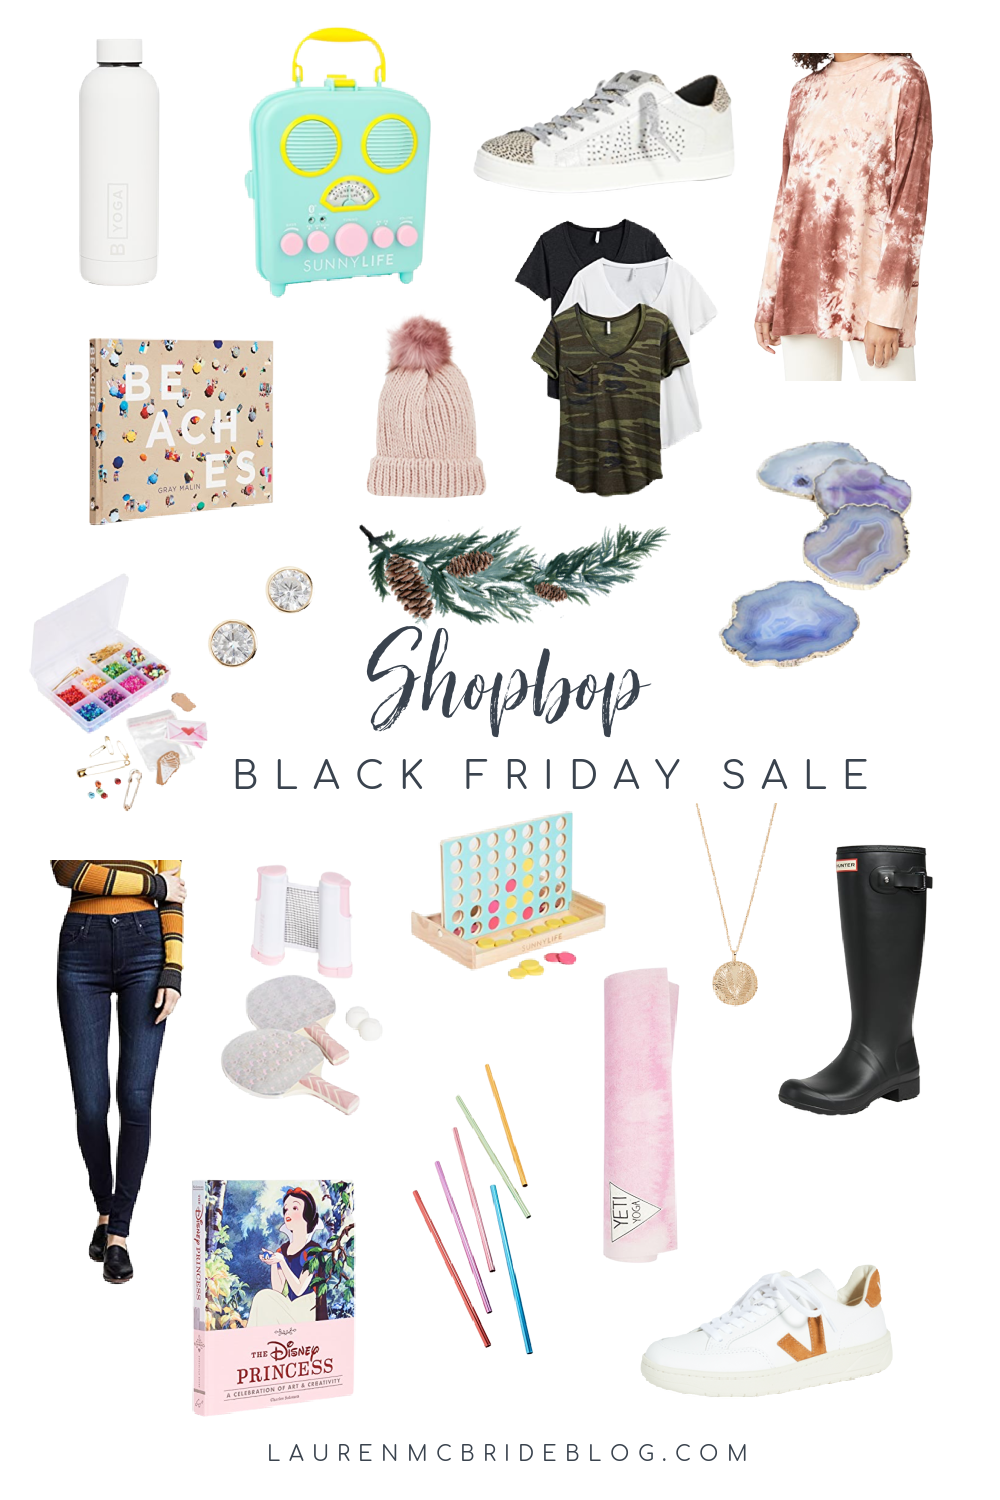 Connecticut life and style blogger Lauren McBride blog shares Shopbop's Black Friday sale.